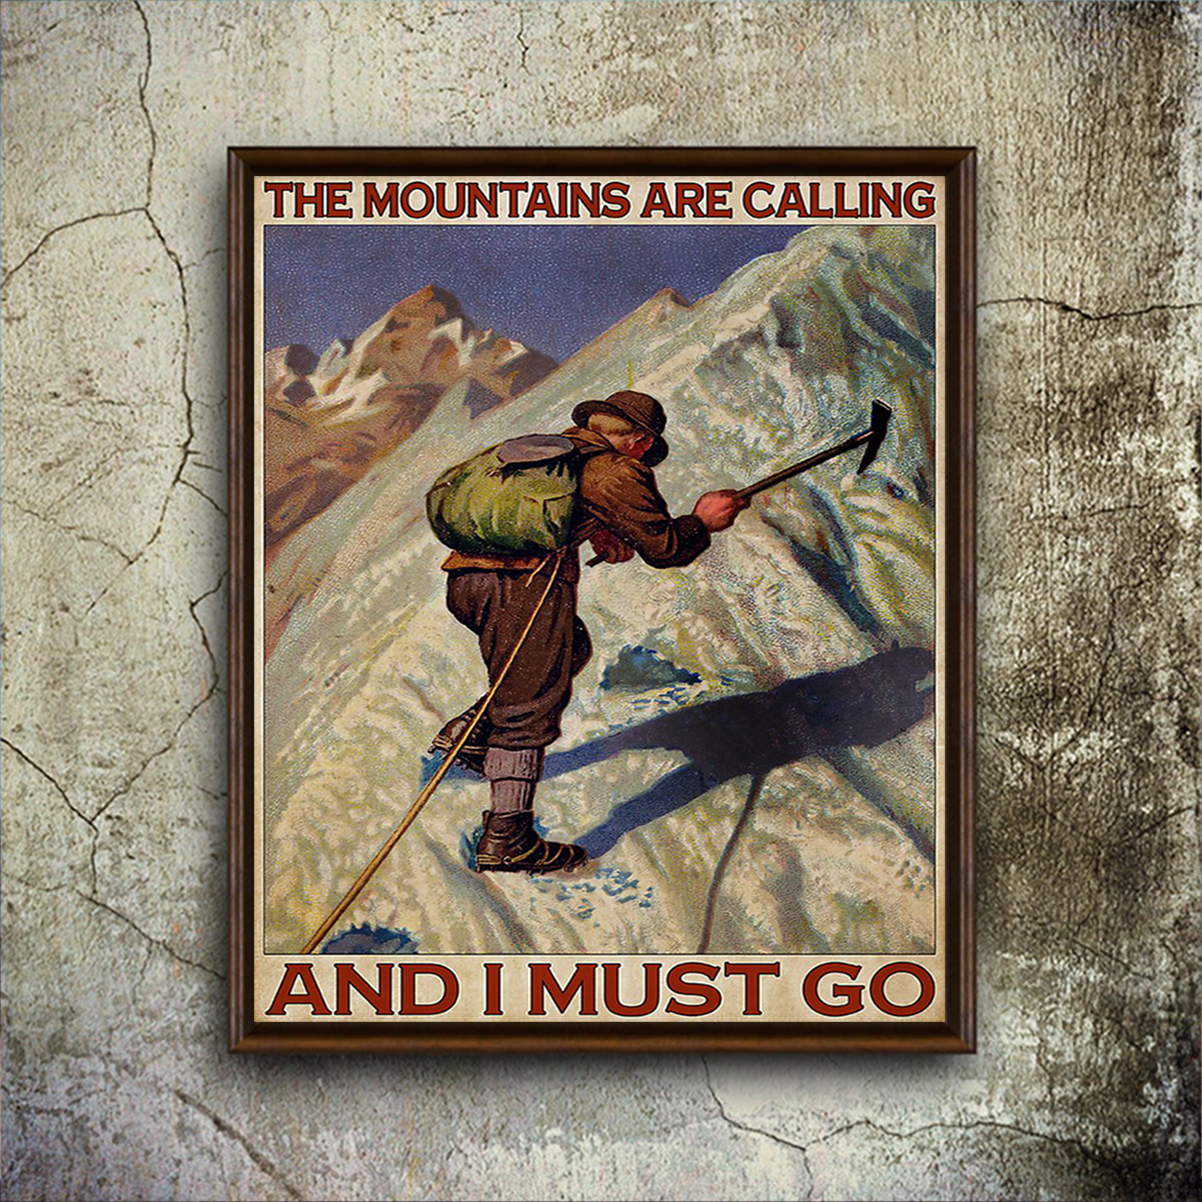 The moutains are calling and I must go poster A2